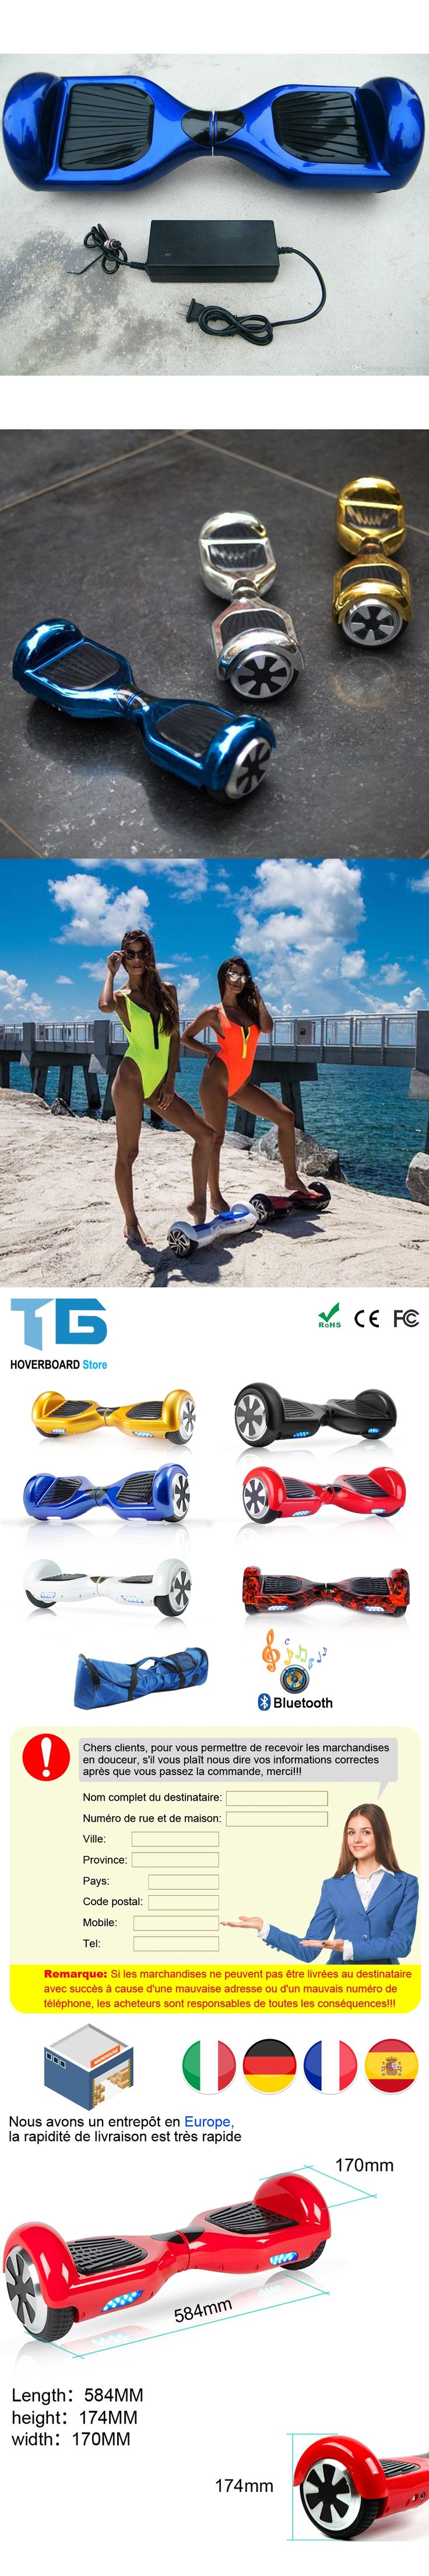 hoverboard patinete electrico Self Balance Scooters overboard electric skateboard oxboard trottinette electrique adulte unicycle